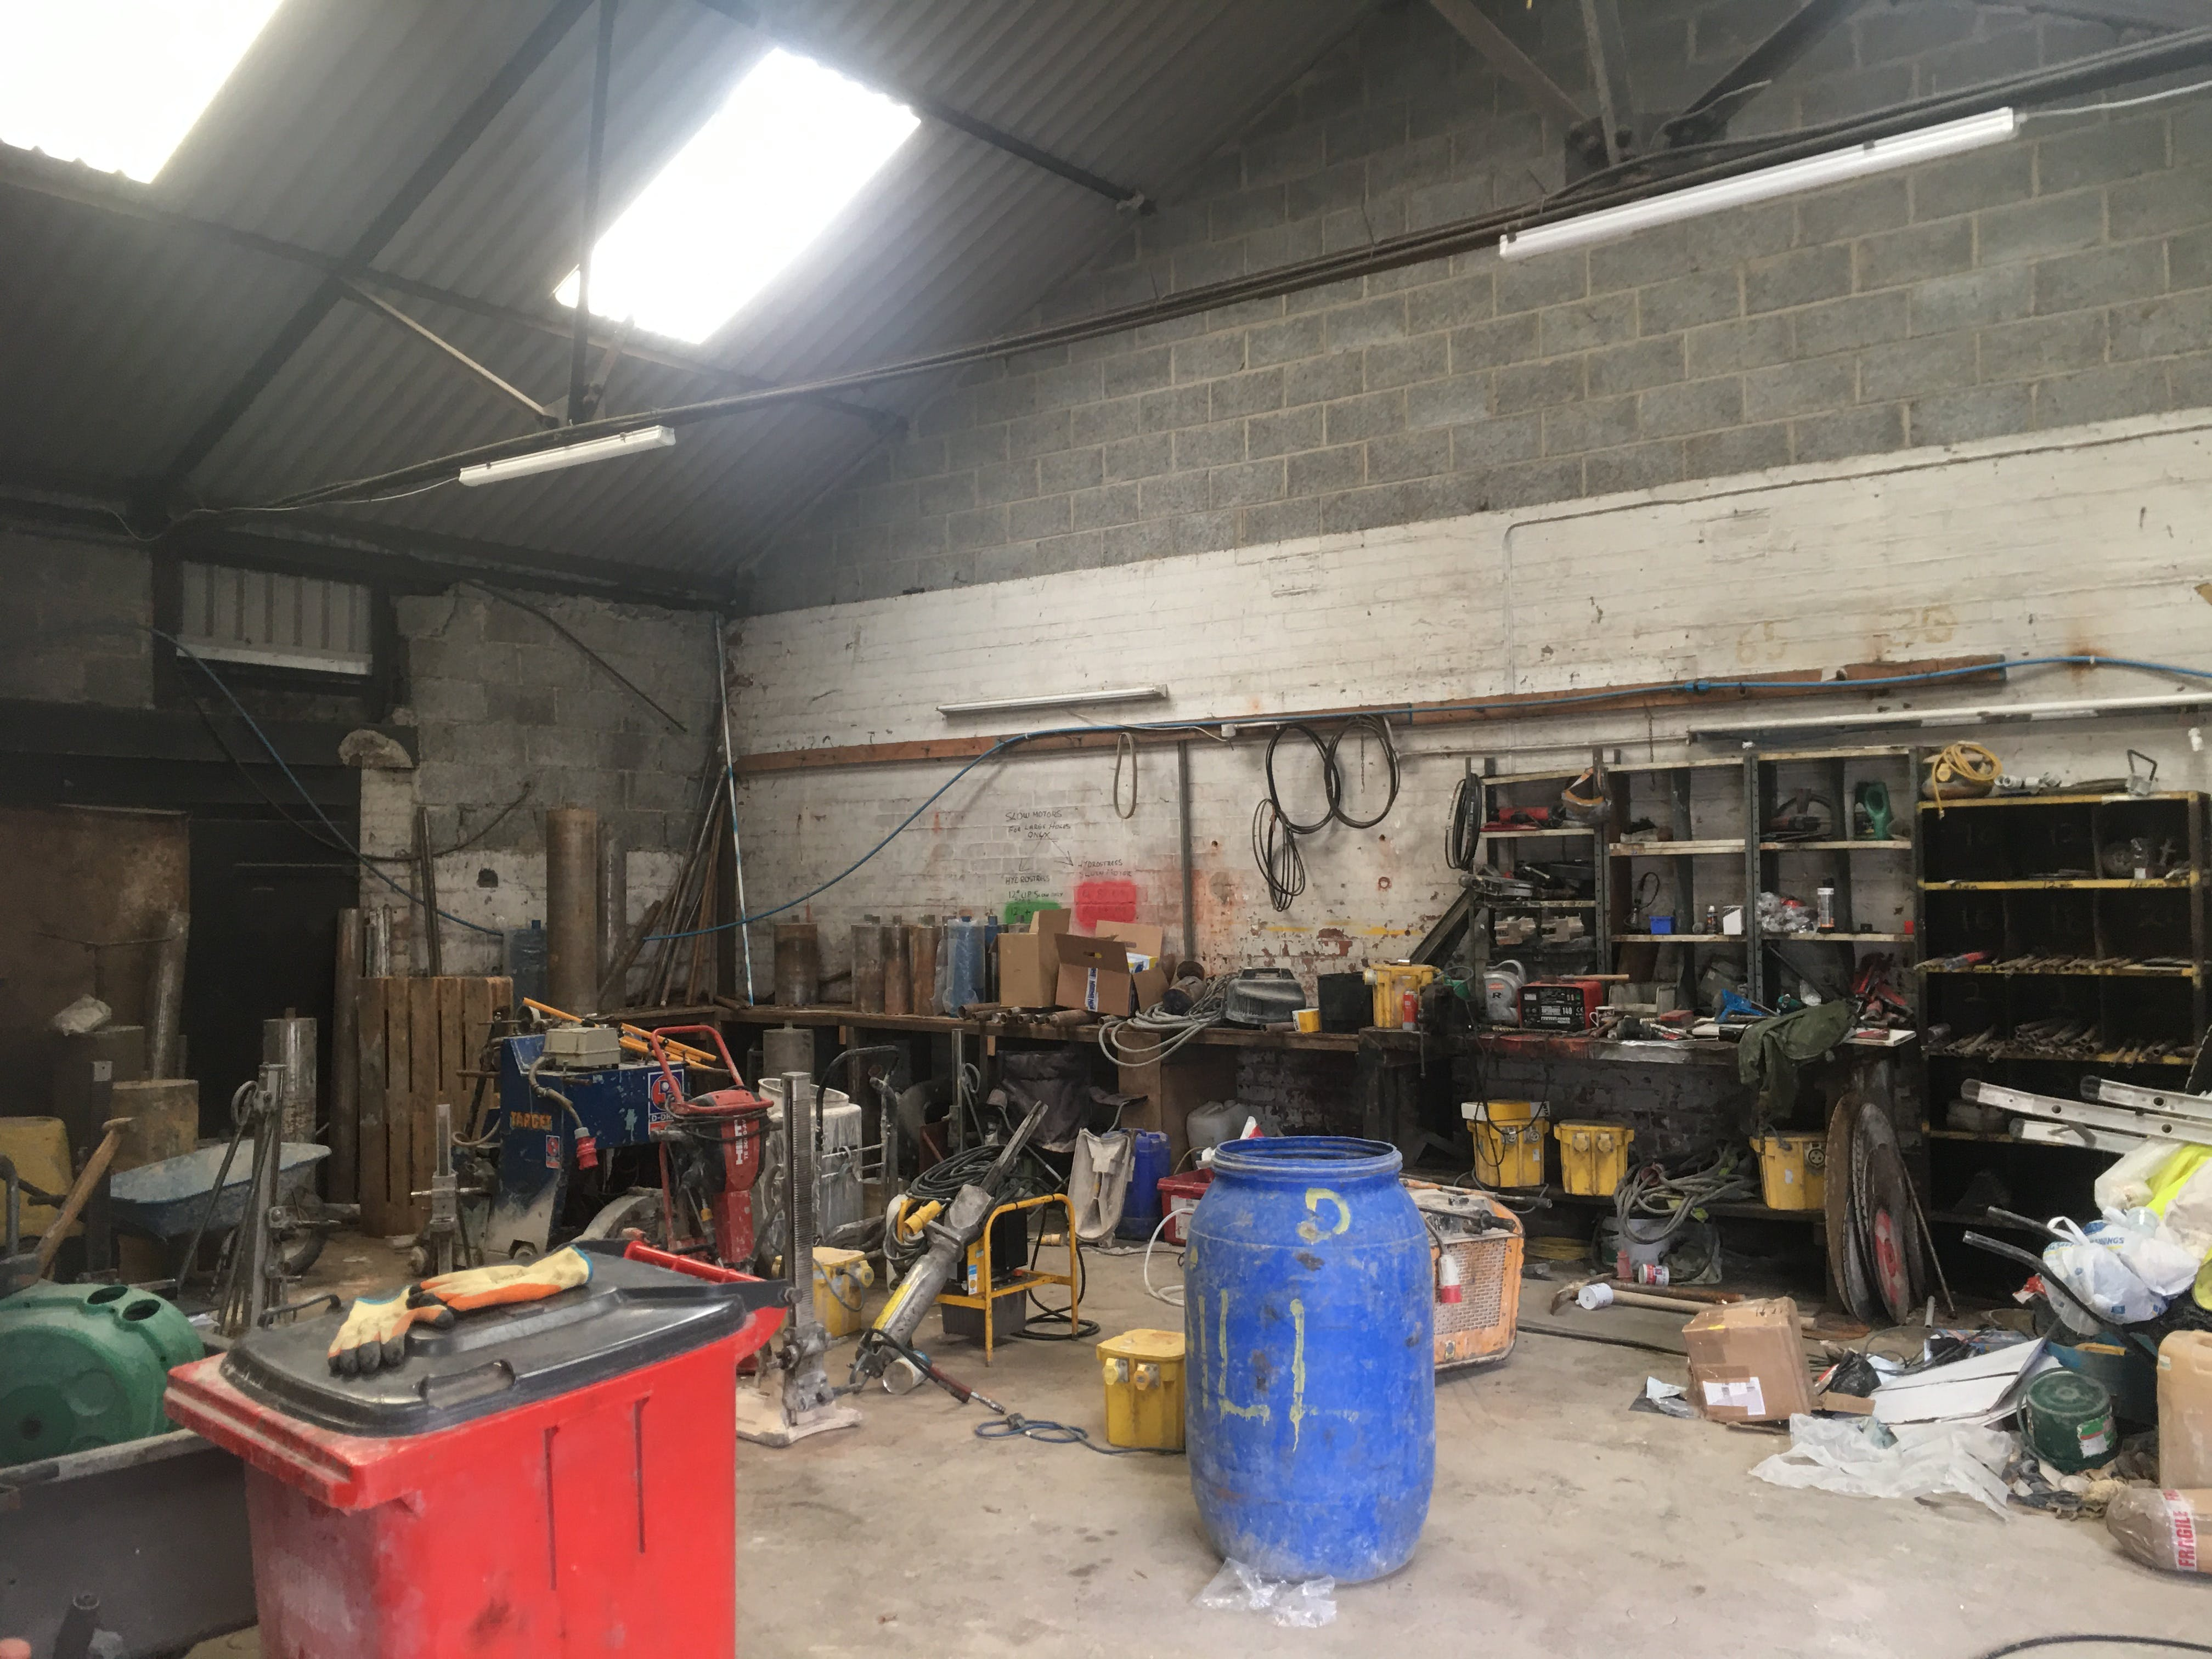 84 Clun Street, Sheffield, Warehouse & Industrial To Let / For Sale - IMG_8680.JPG